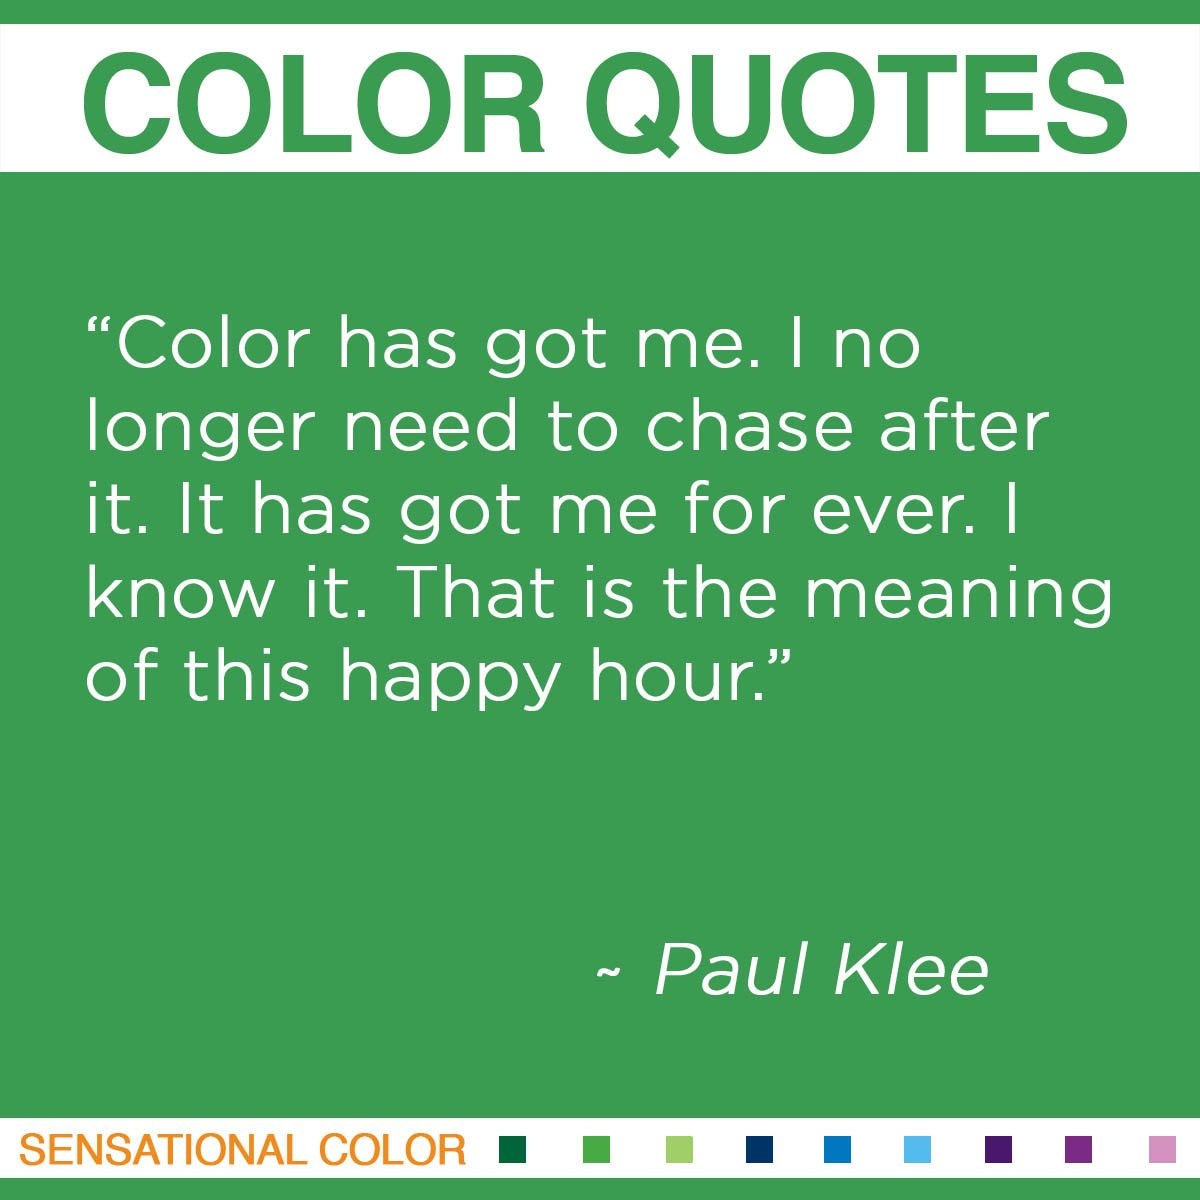 """""""Color has got me. I no longer need to chase after it. It has got me for ever. I know it. That is the meaning of this happy hour.""""  - Paul Klee"""